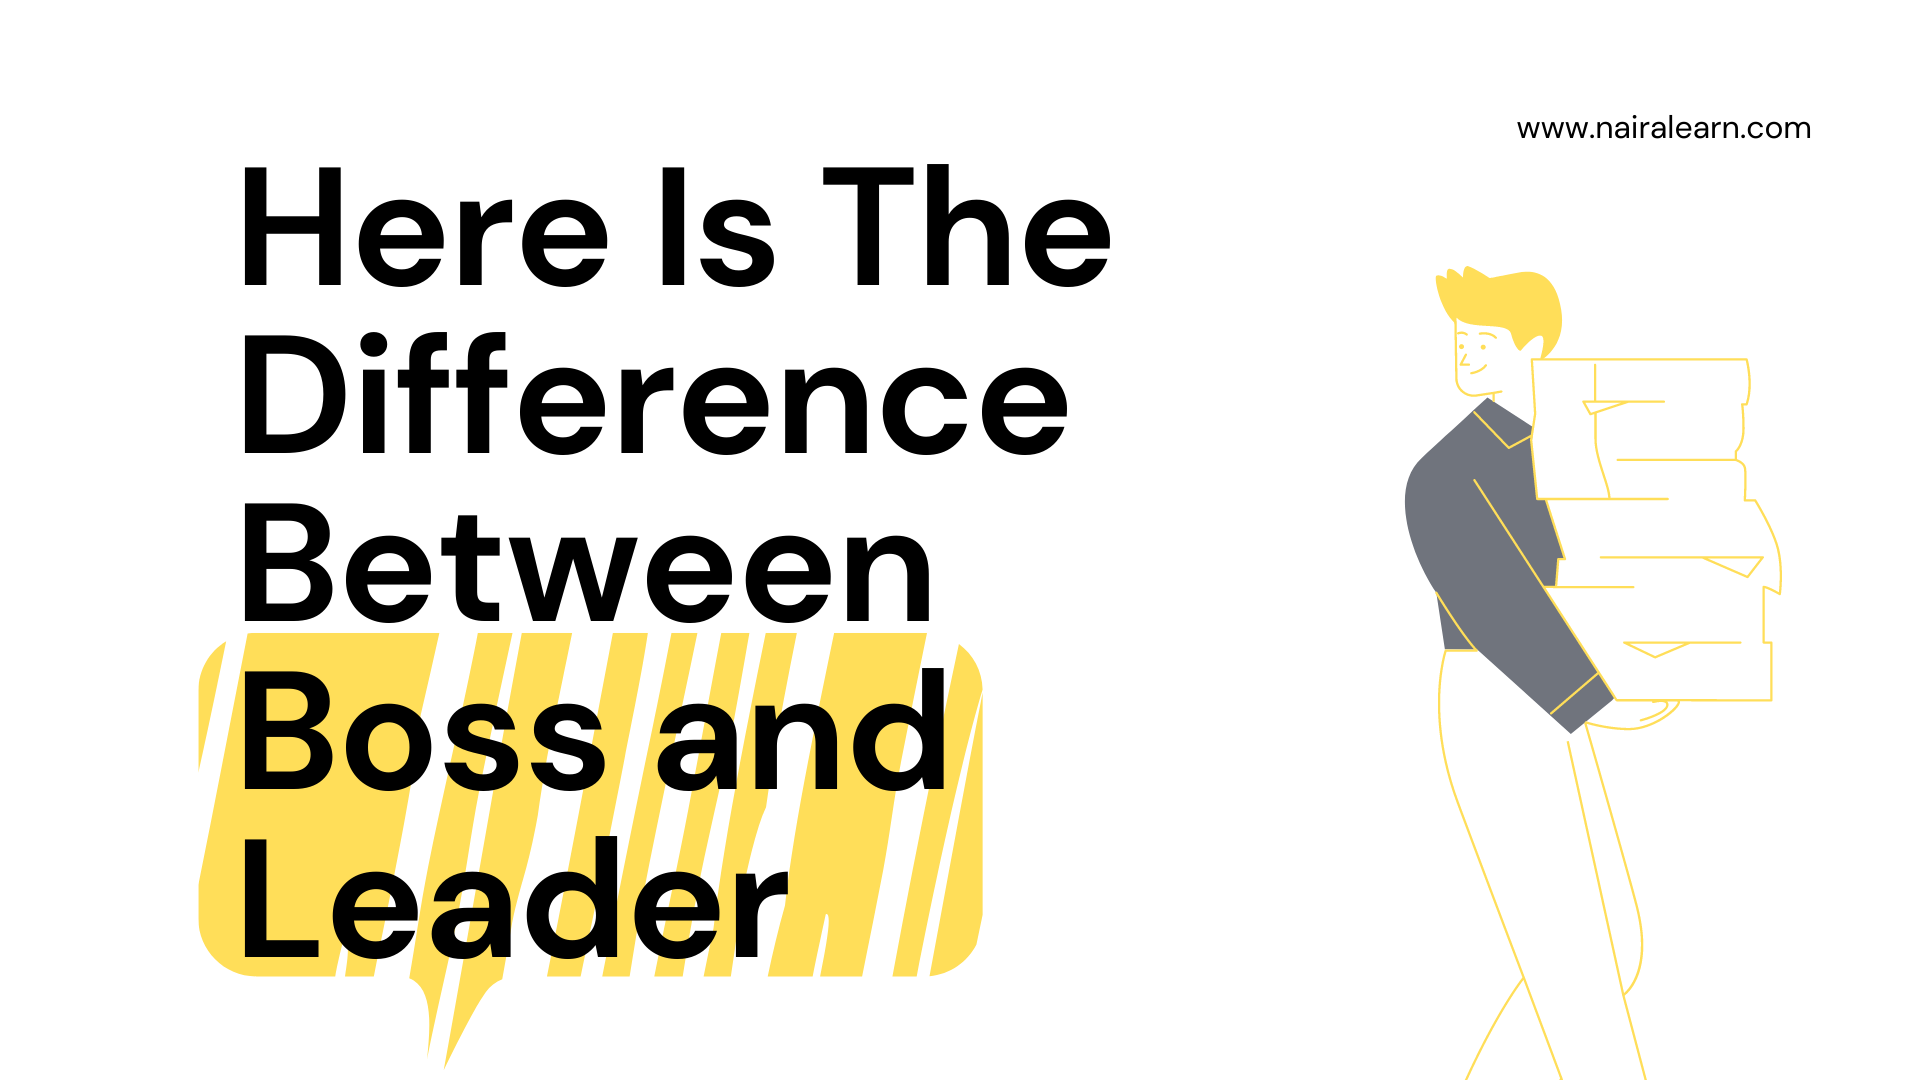 Here Is The Difference Between Boss and Leader